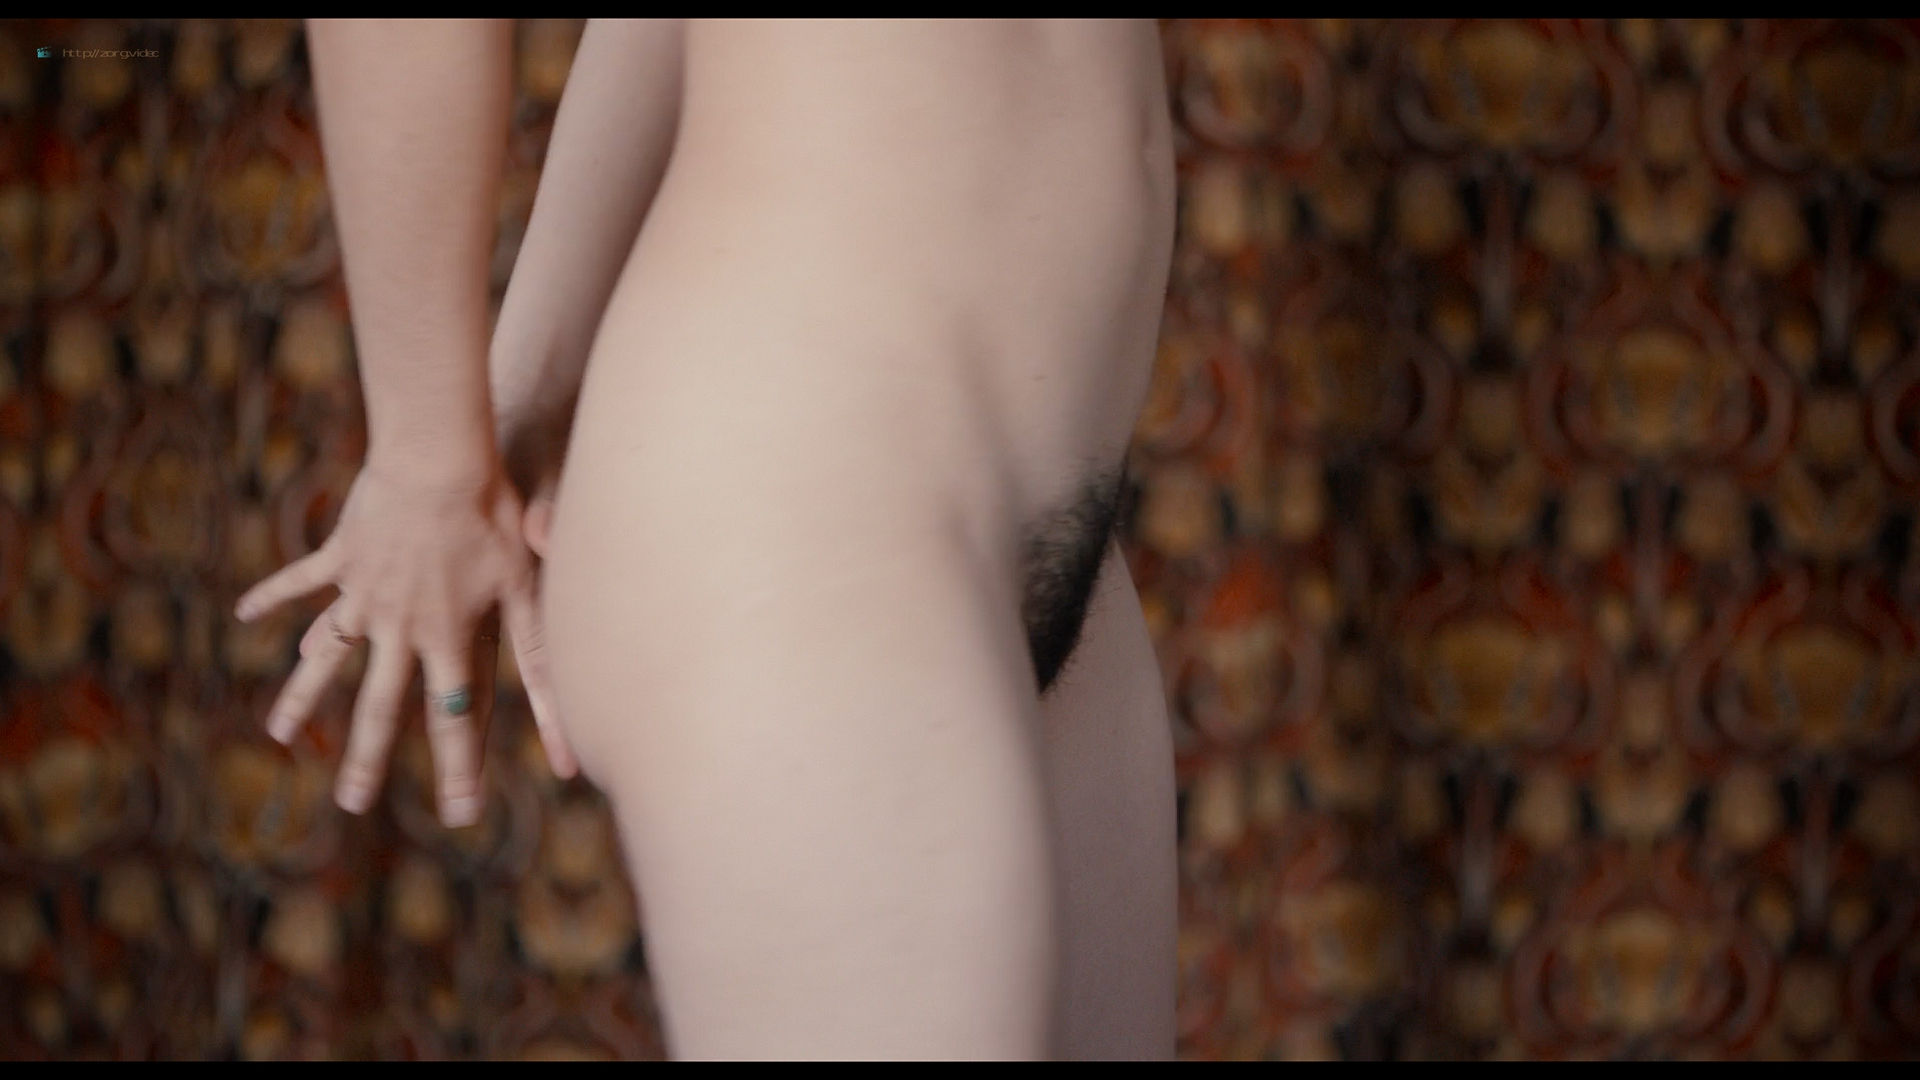 Noemie Merlant nude full frontal Camelia Jordana, Amira Casar and others nude - Curiosa (2019) HD 1080p Web (18)